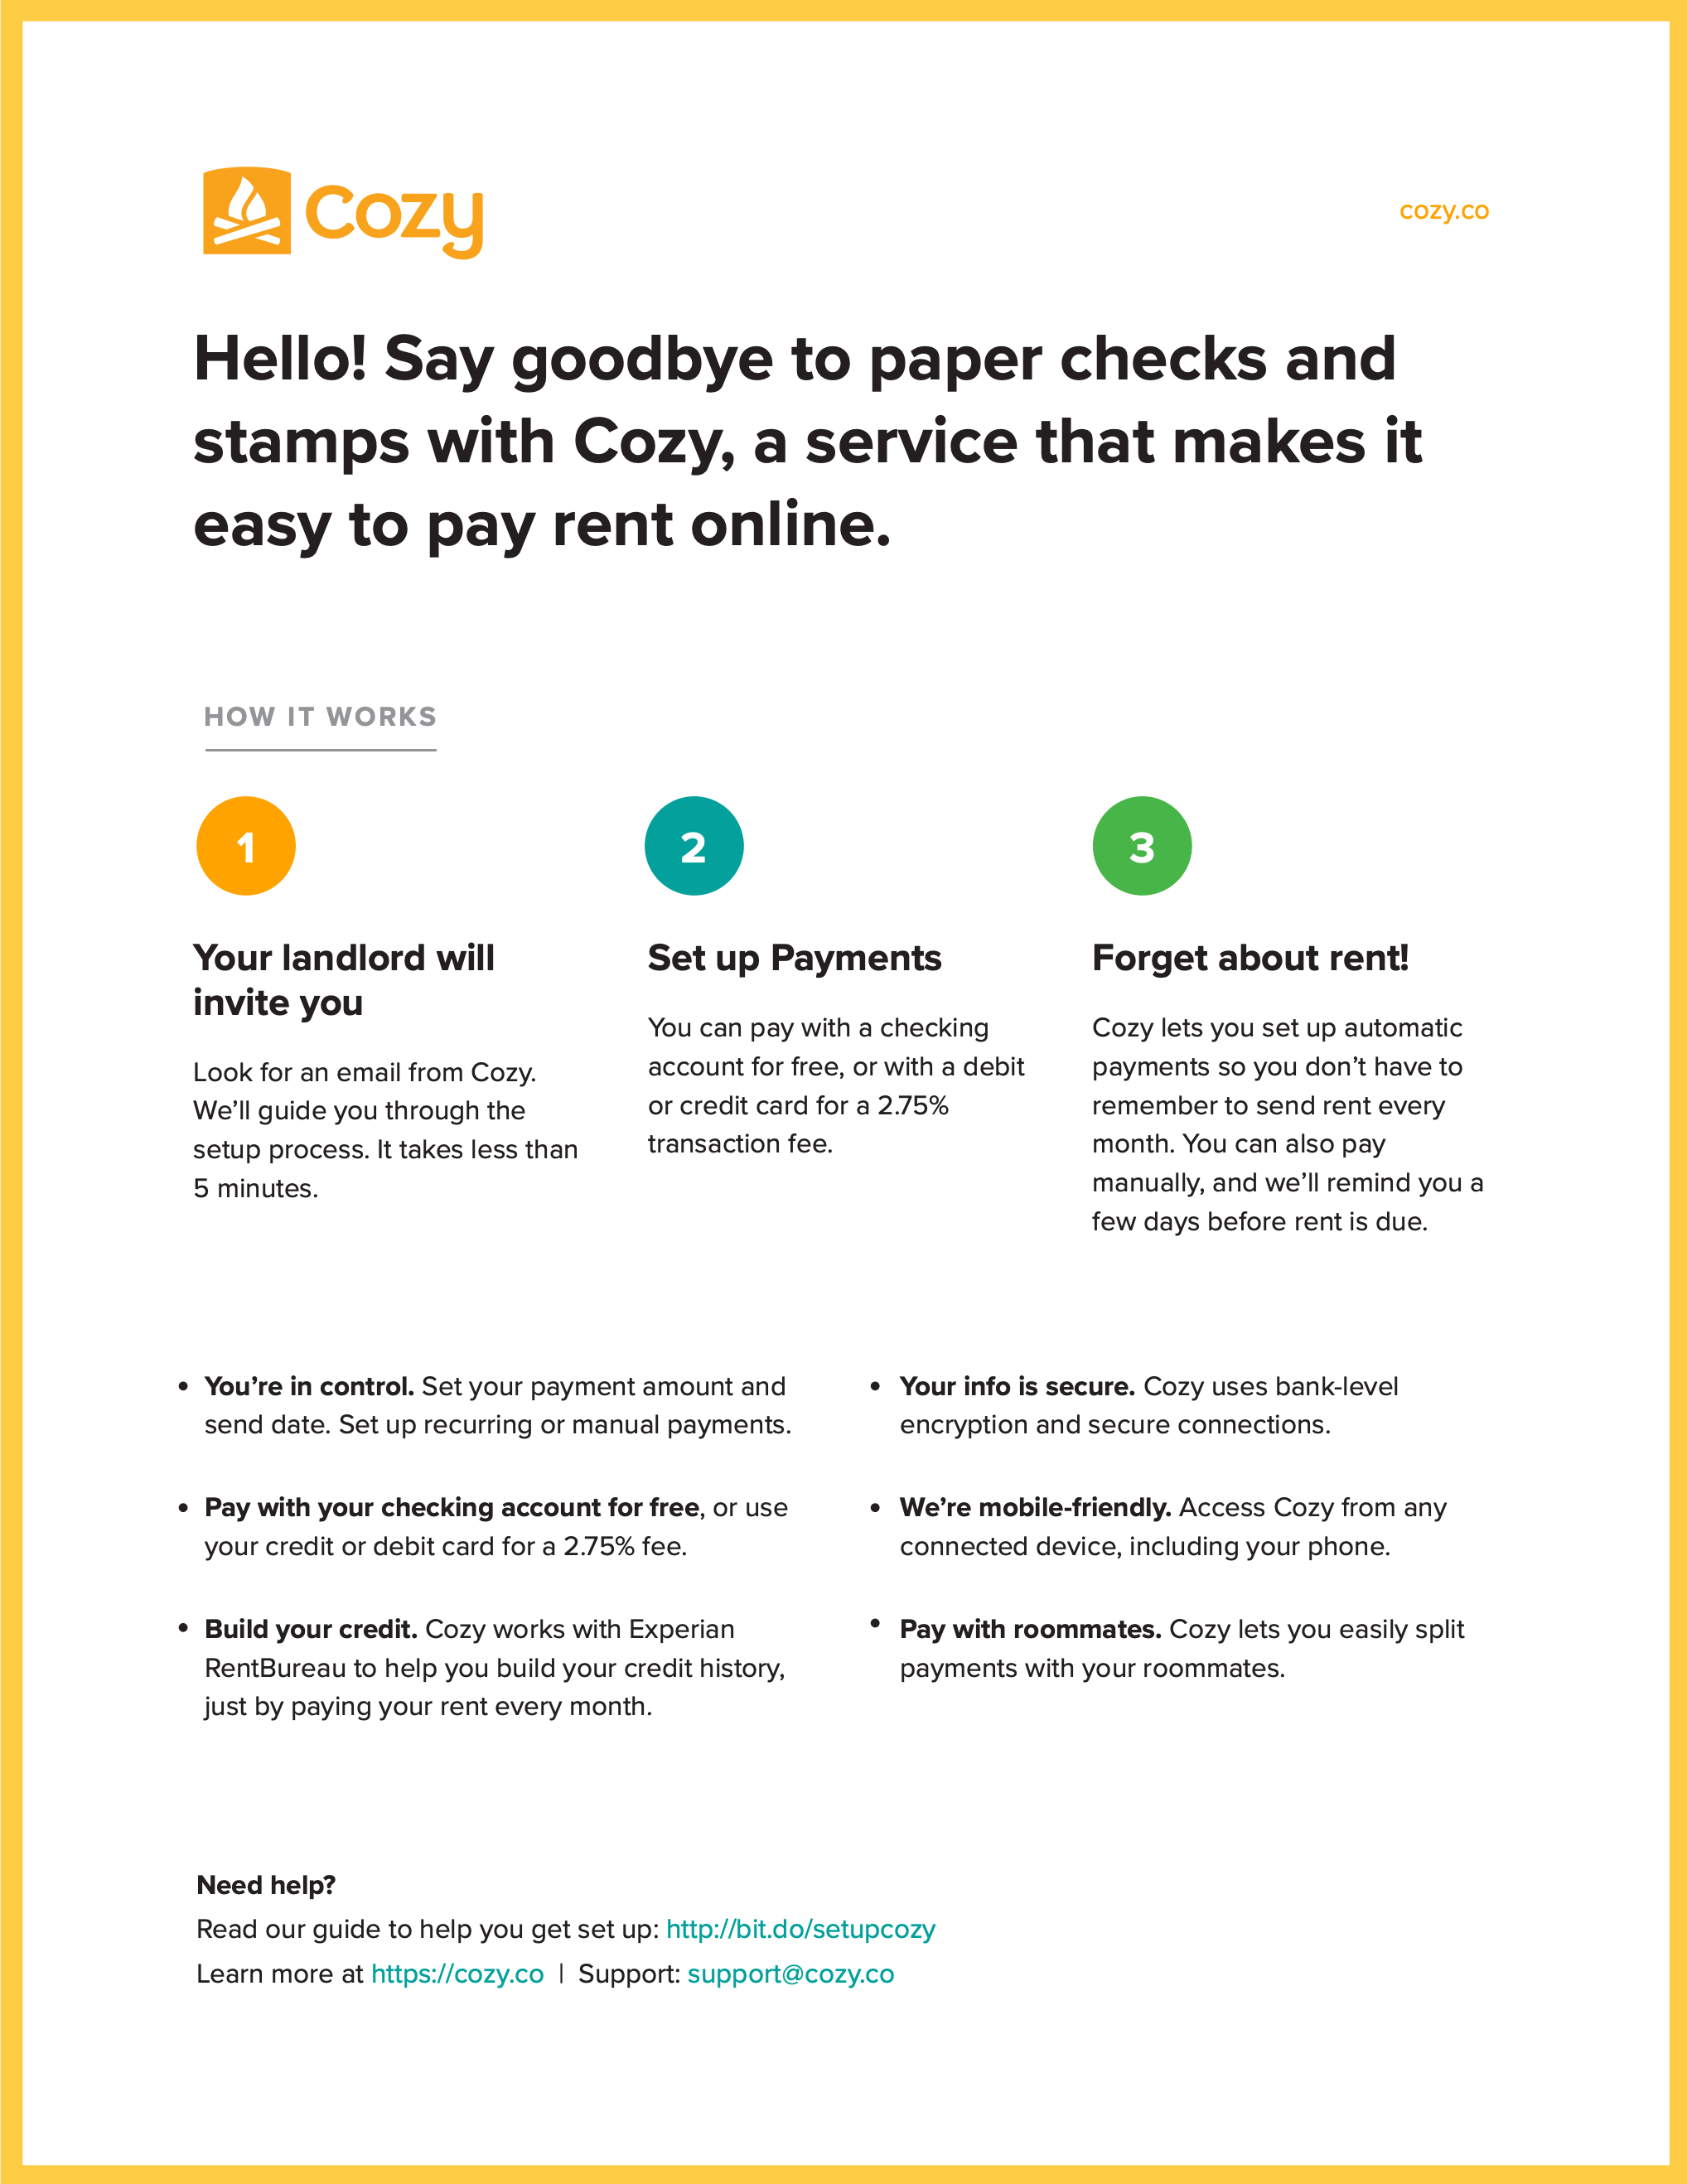 Cozy renter handout to help introduce renters to Cozy payments